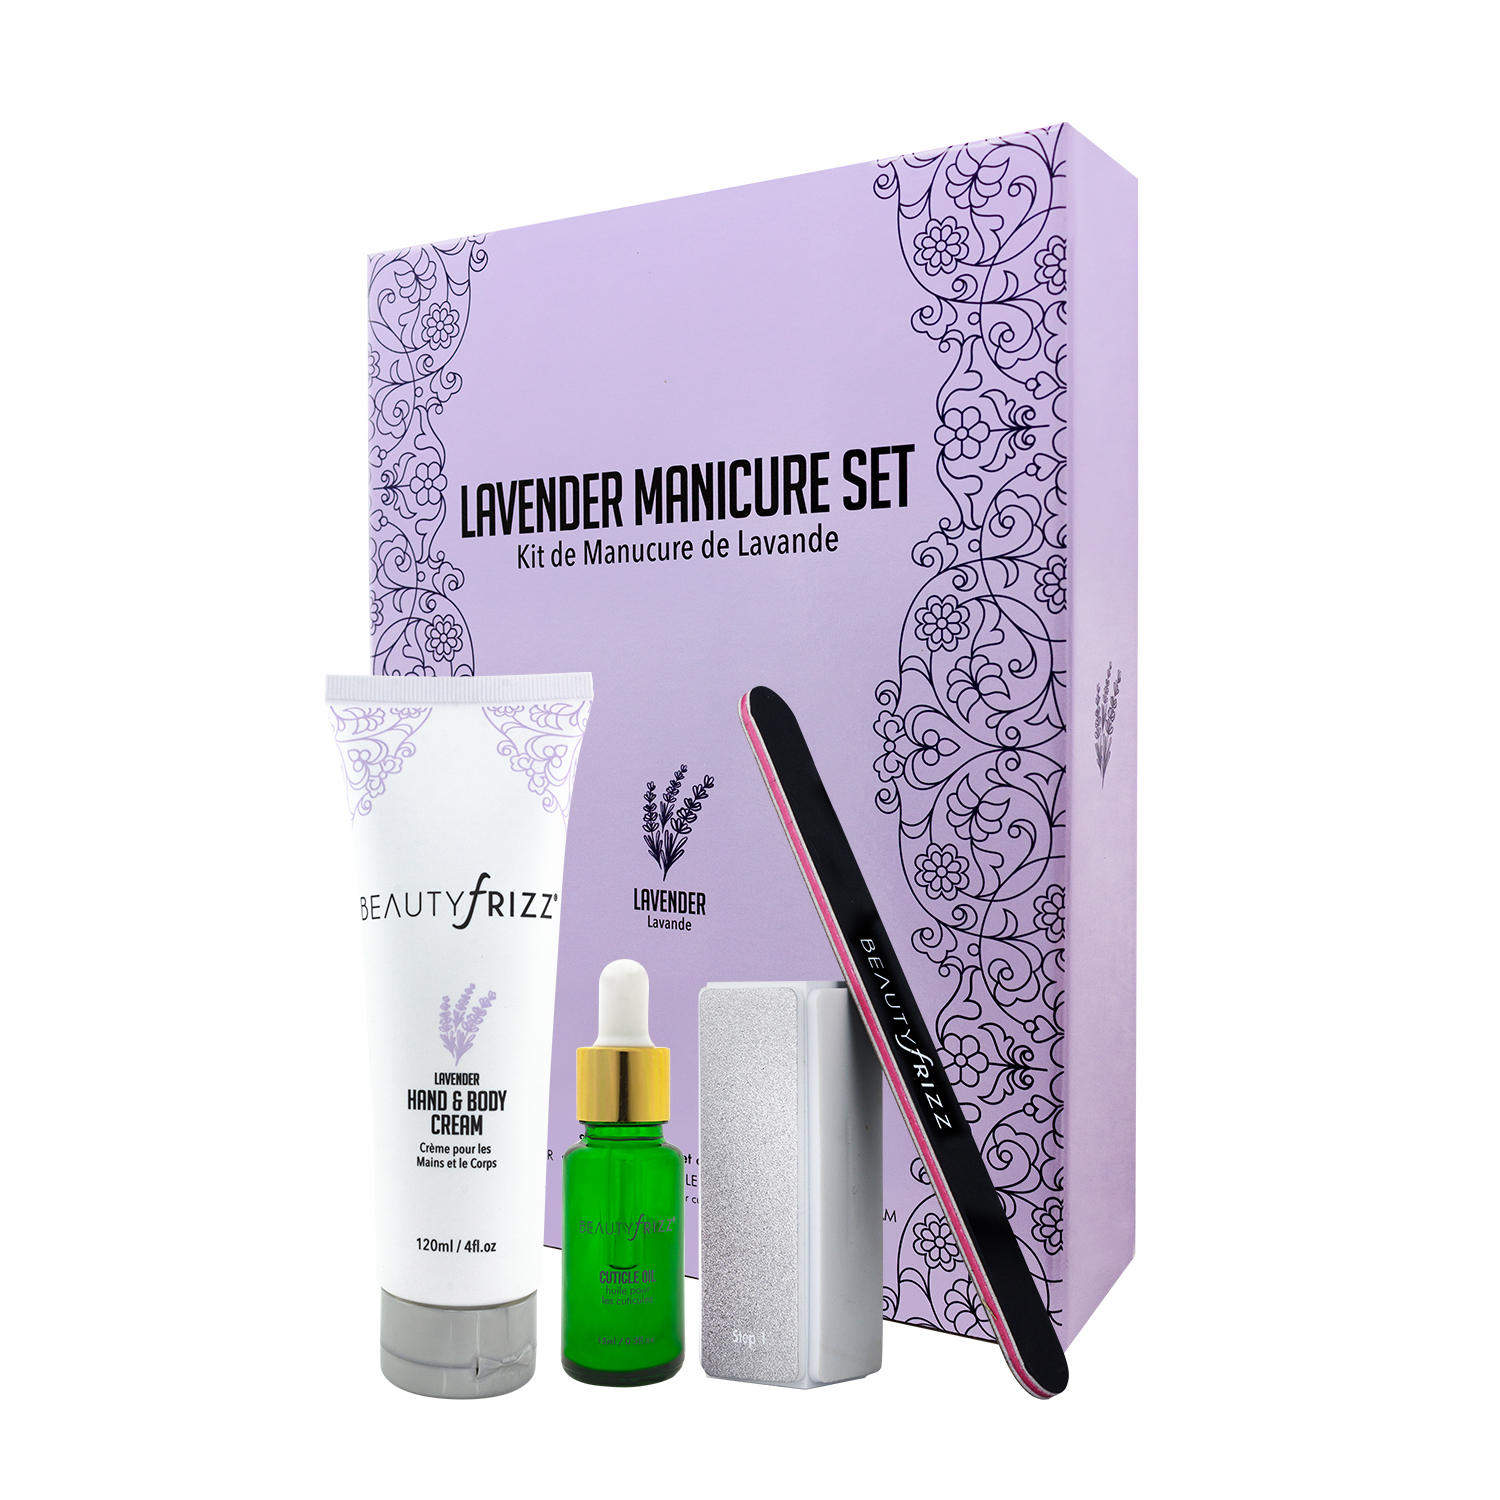 Beauty Frizz Lavender Manicure Set